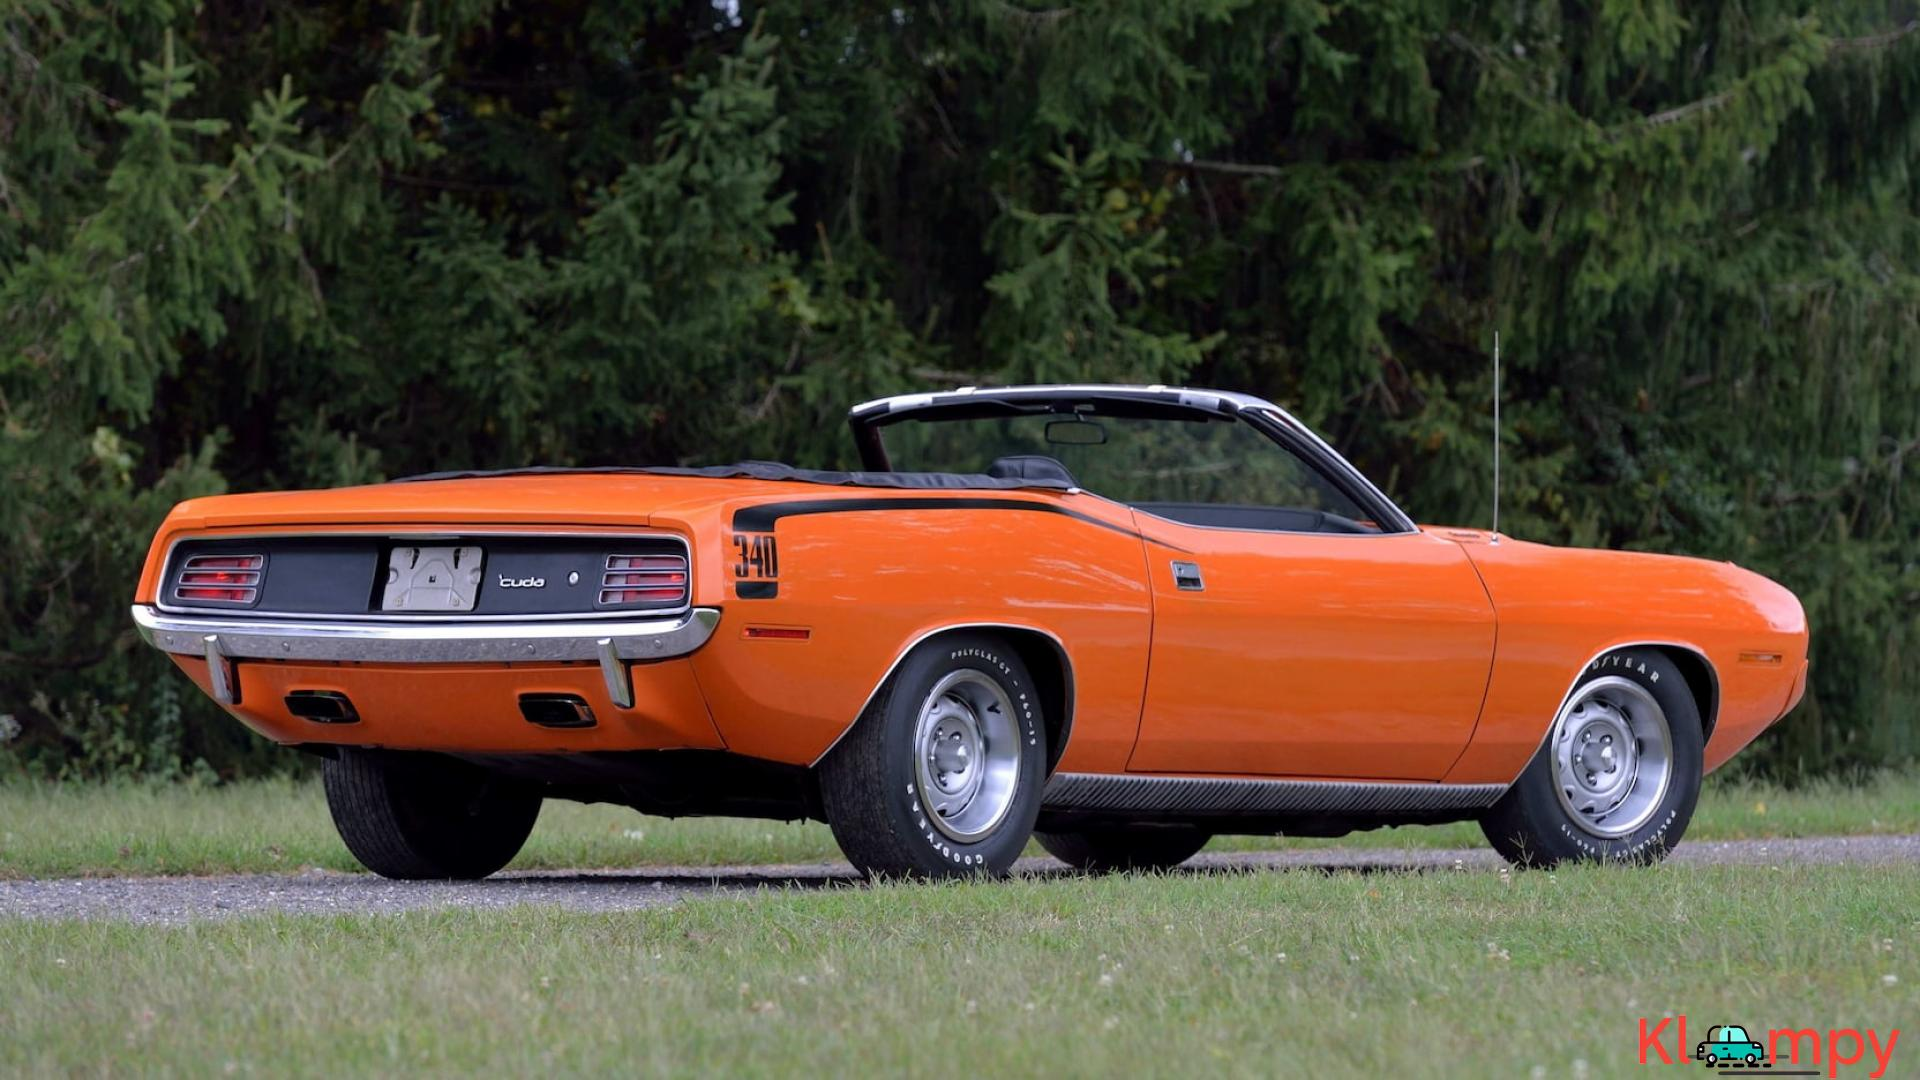 1970 Plymouth Cuda Convertible 340 Matching Numbers - 4/17